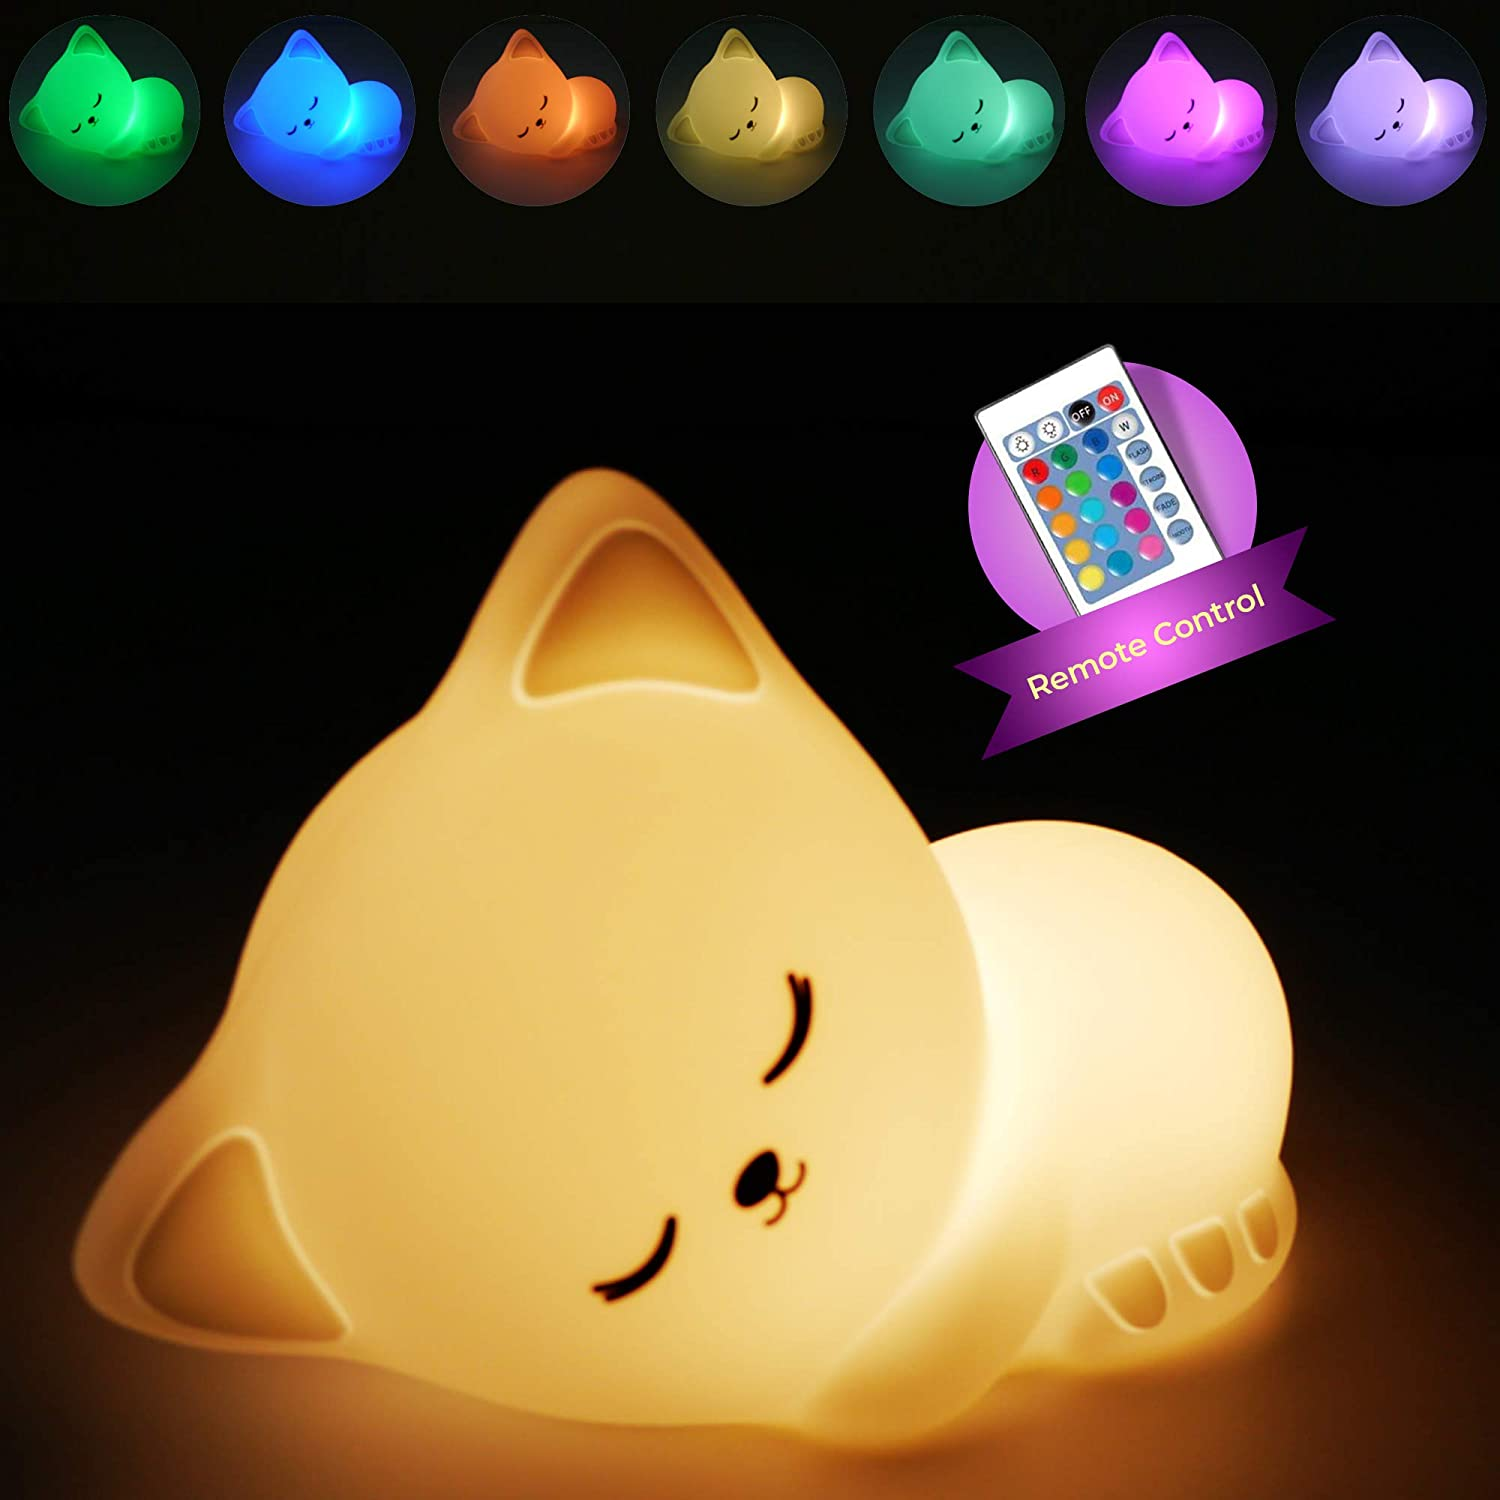 Cute Squishy Kitty Night Light - Silicon Lovely Kitten Pets Nursery Color Changing LED Decor Sleep Cat Lamp Lights with Touch Sensor and Remote Control for Kids, Childrens, Toddler, Baby, and Girls